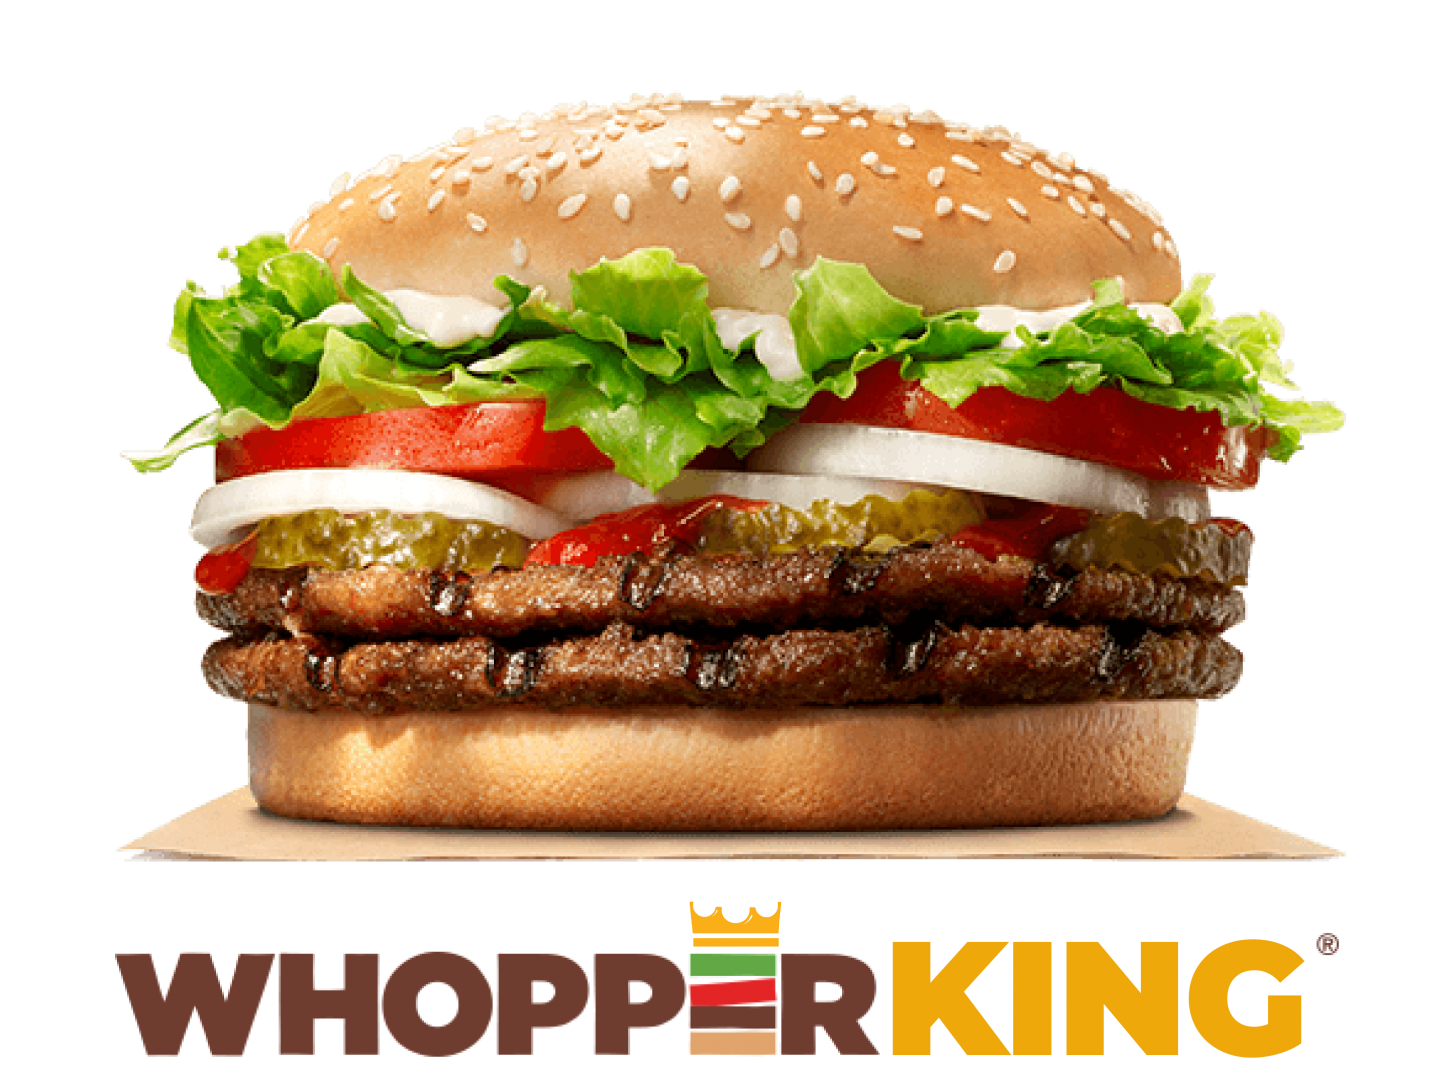 The WhopperKing Thumbnail